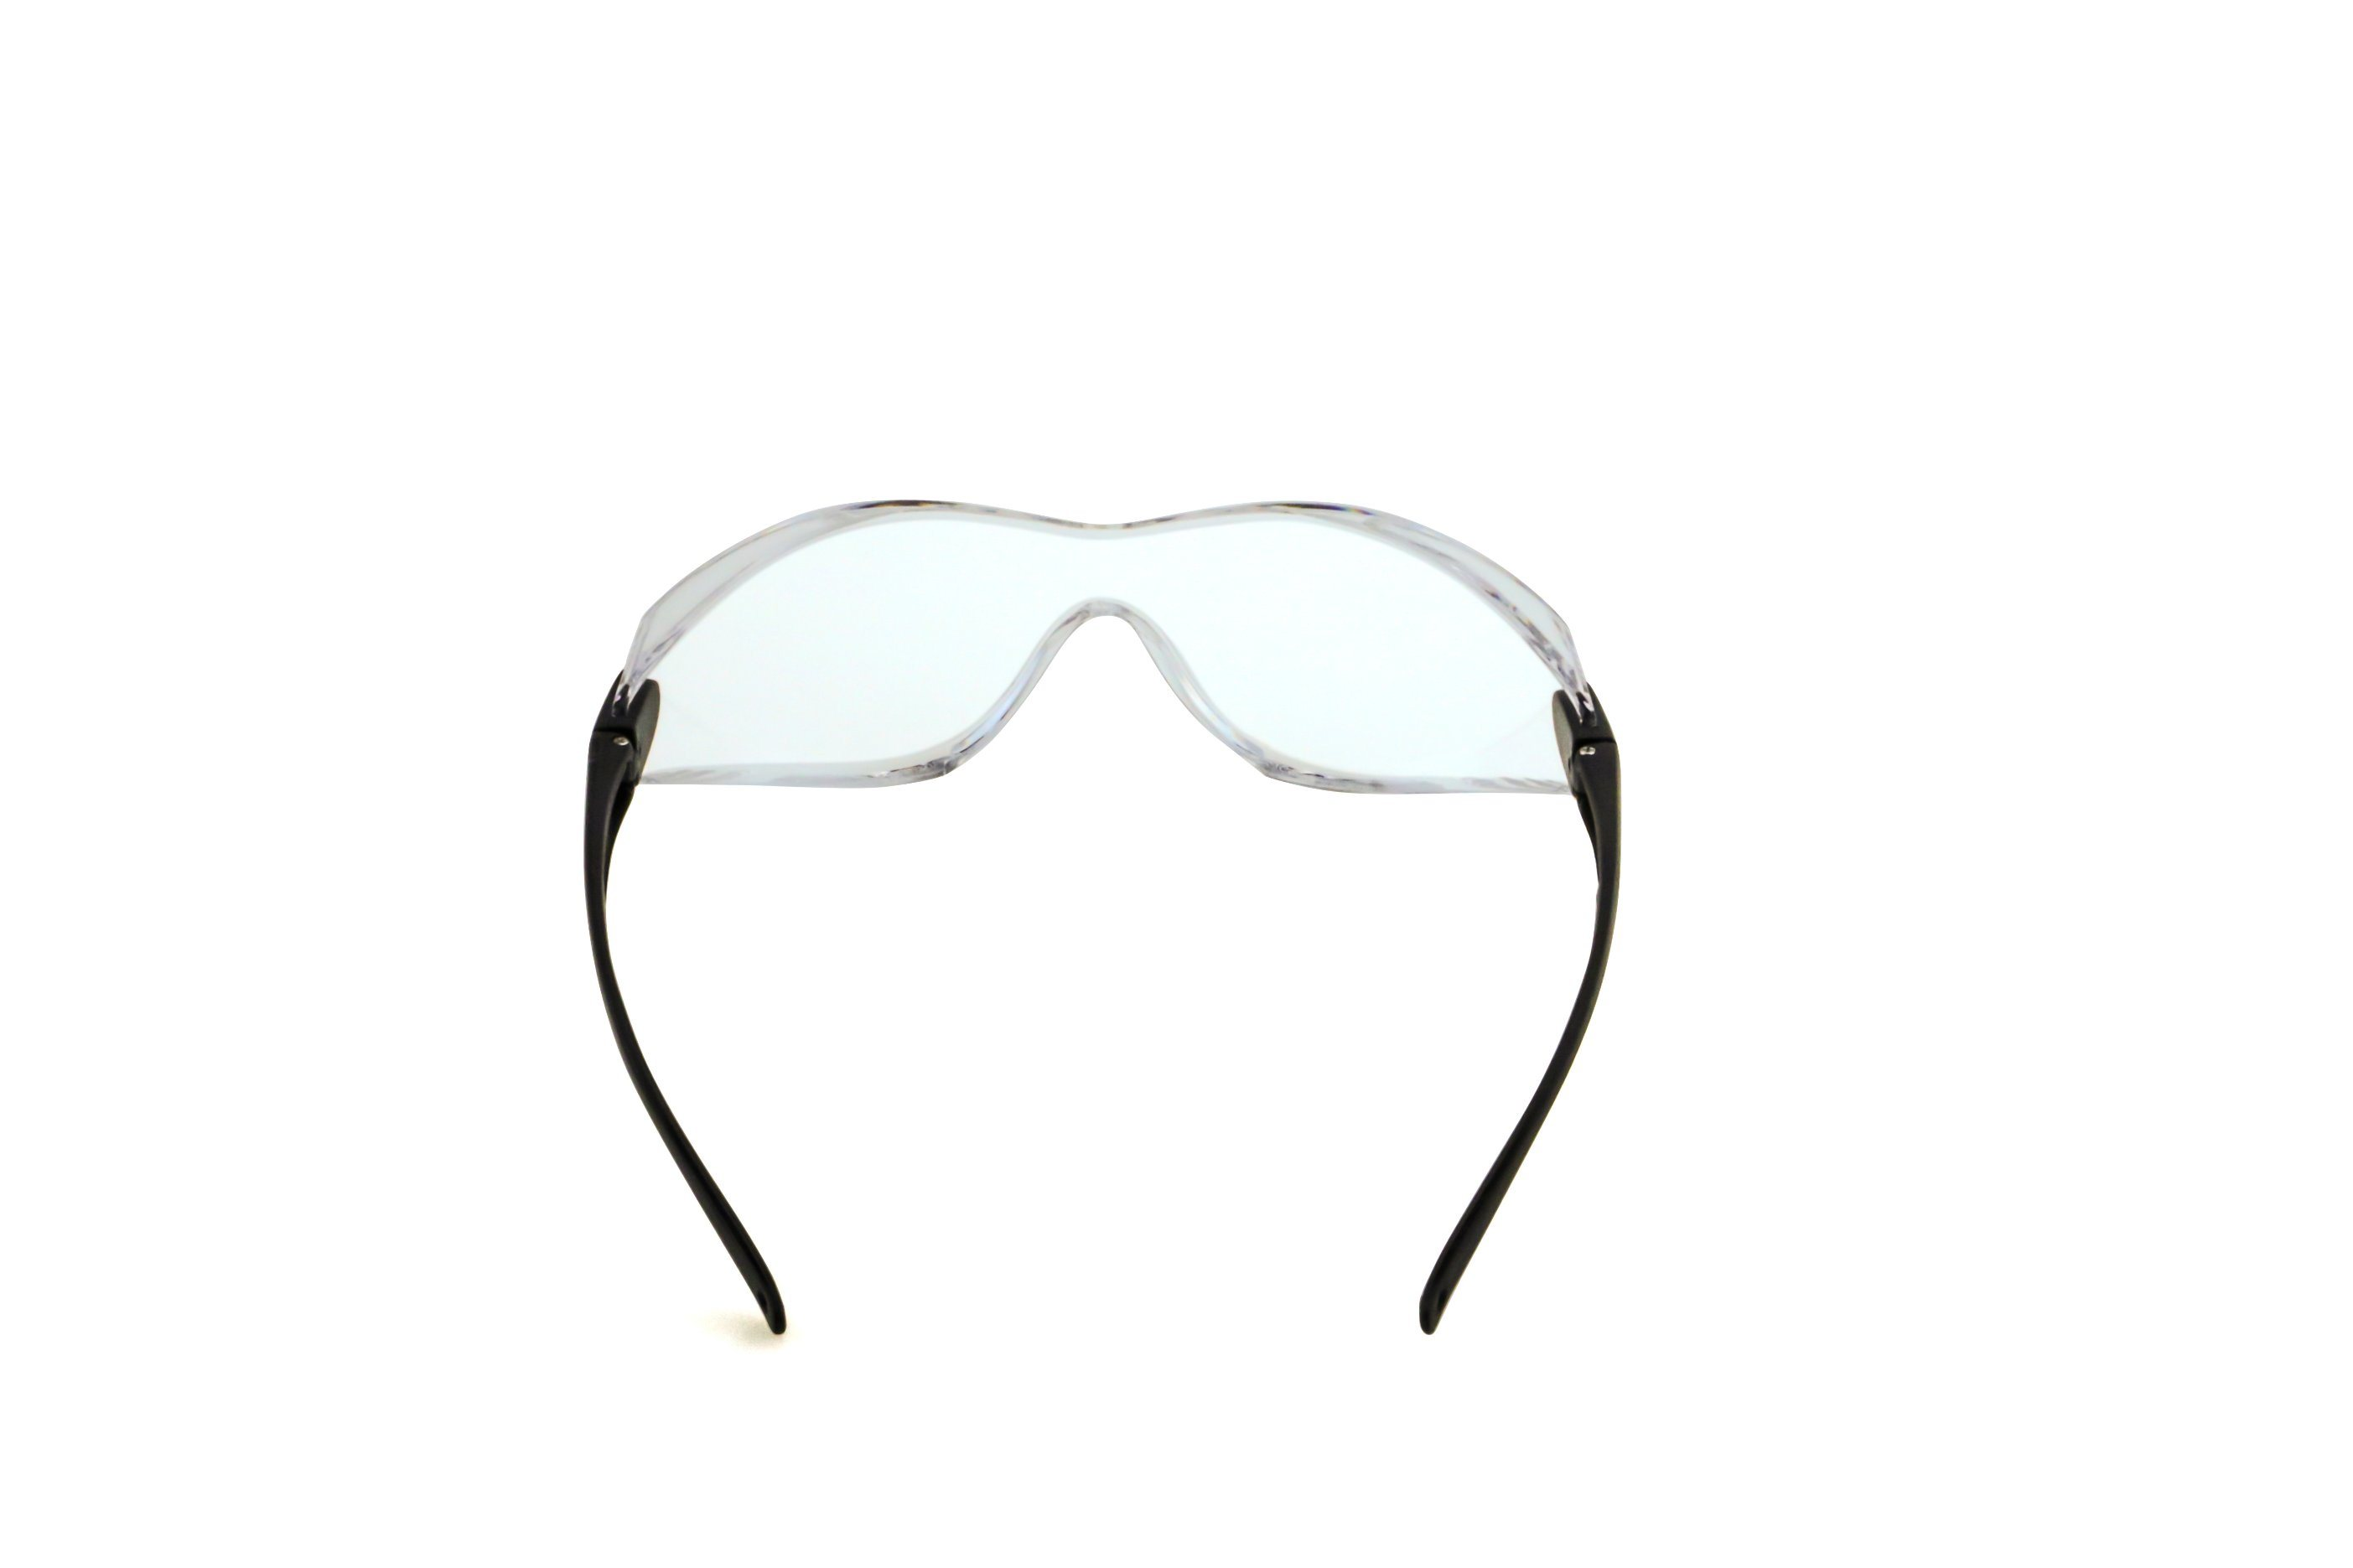 Adjustable Welding Goggles Safety Glasses Laser Protection Eye Spectacles